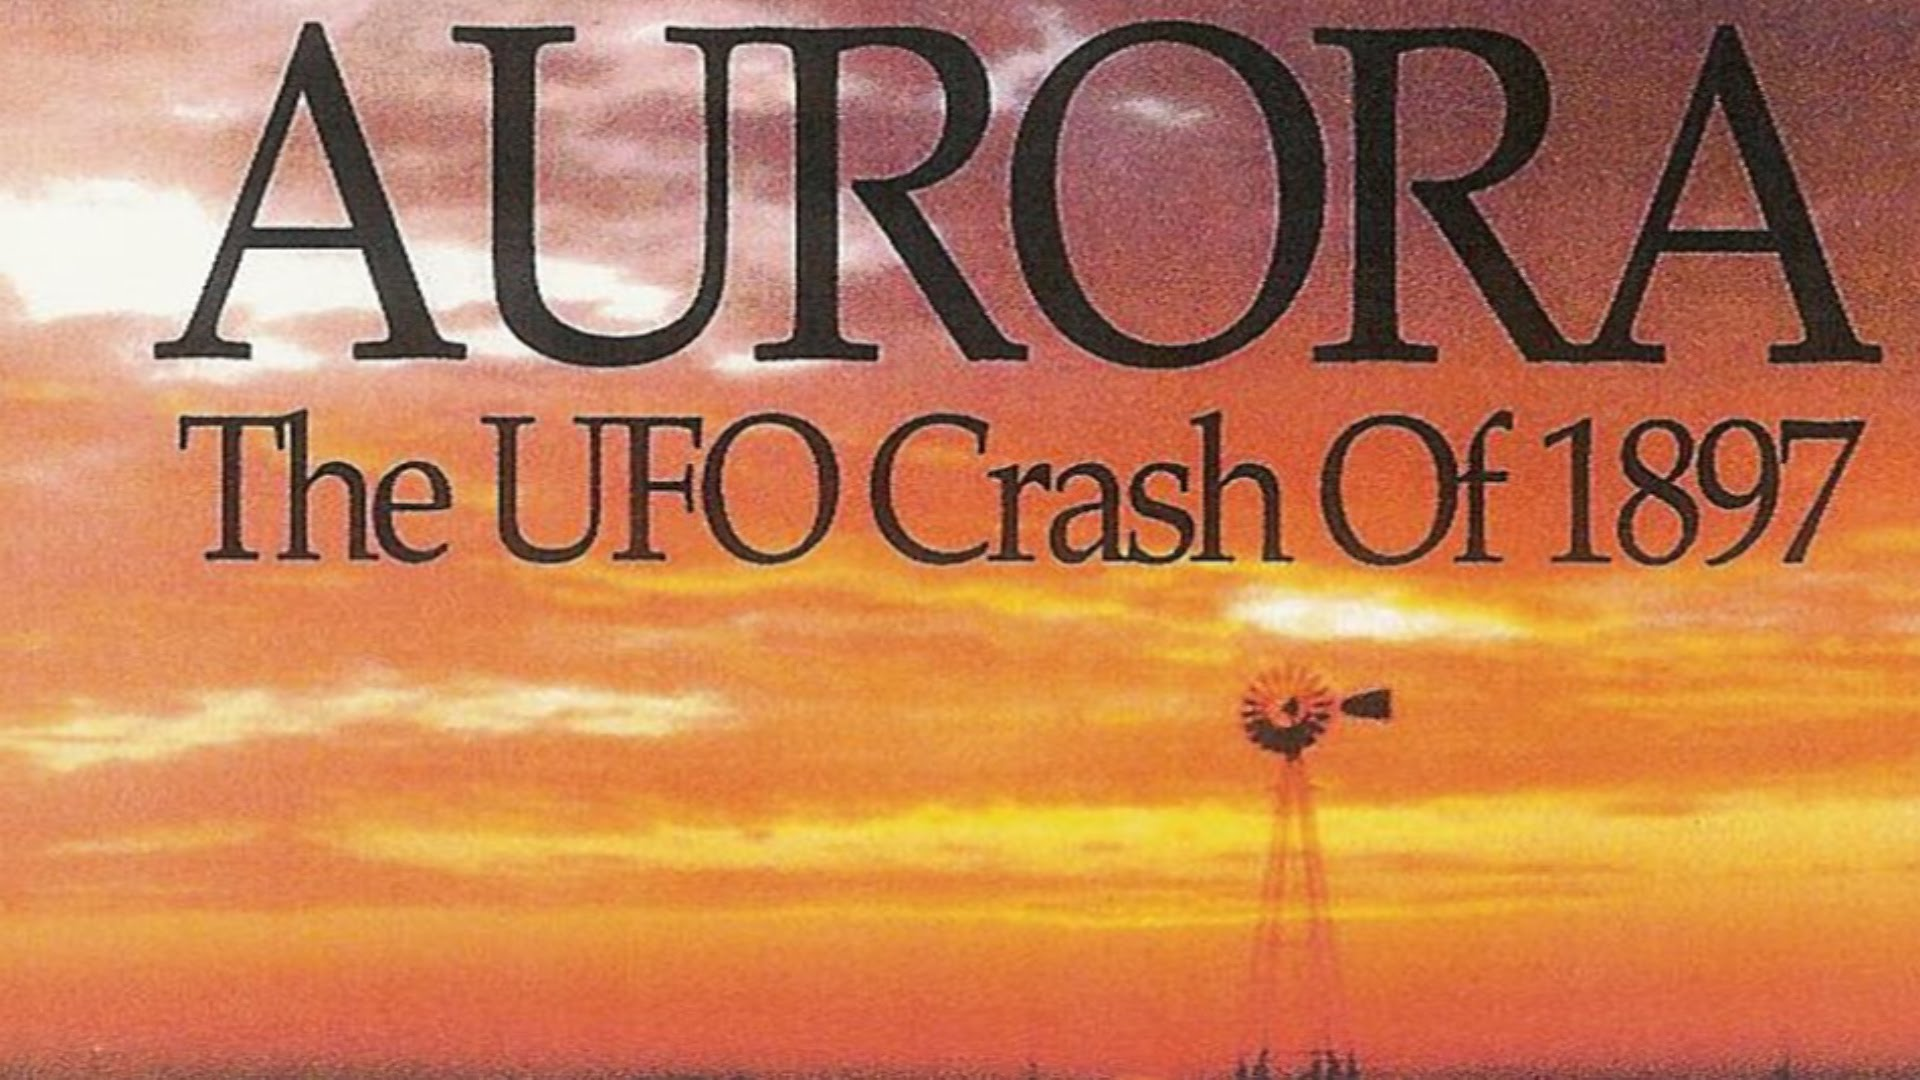 The Aurora UFO Incident Of 1897